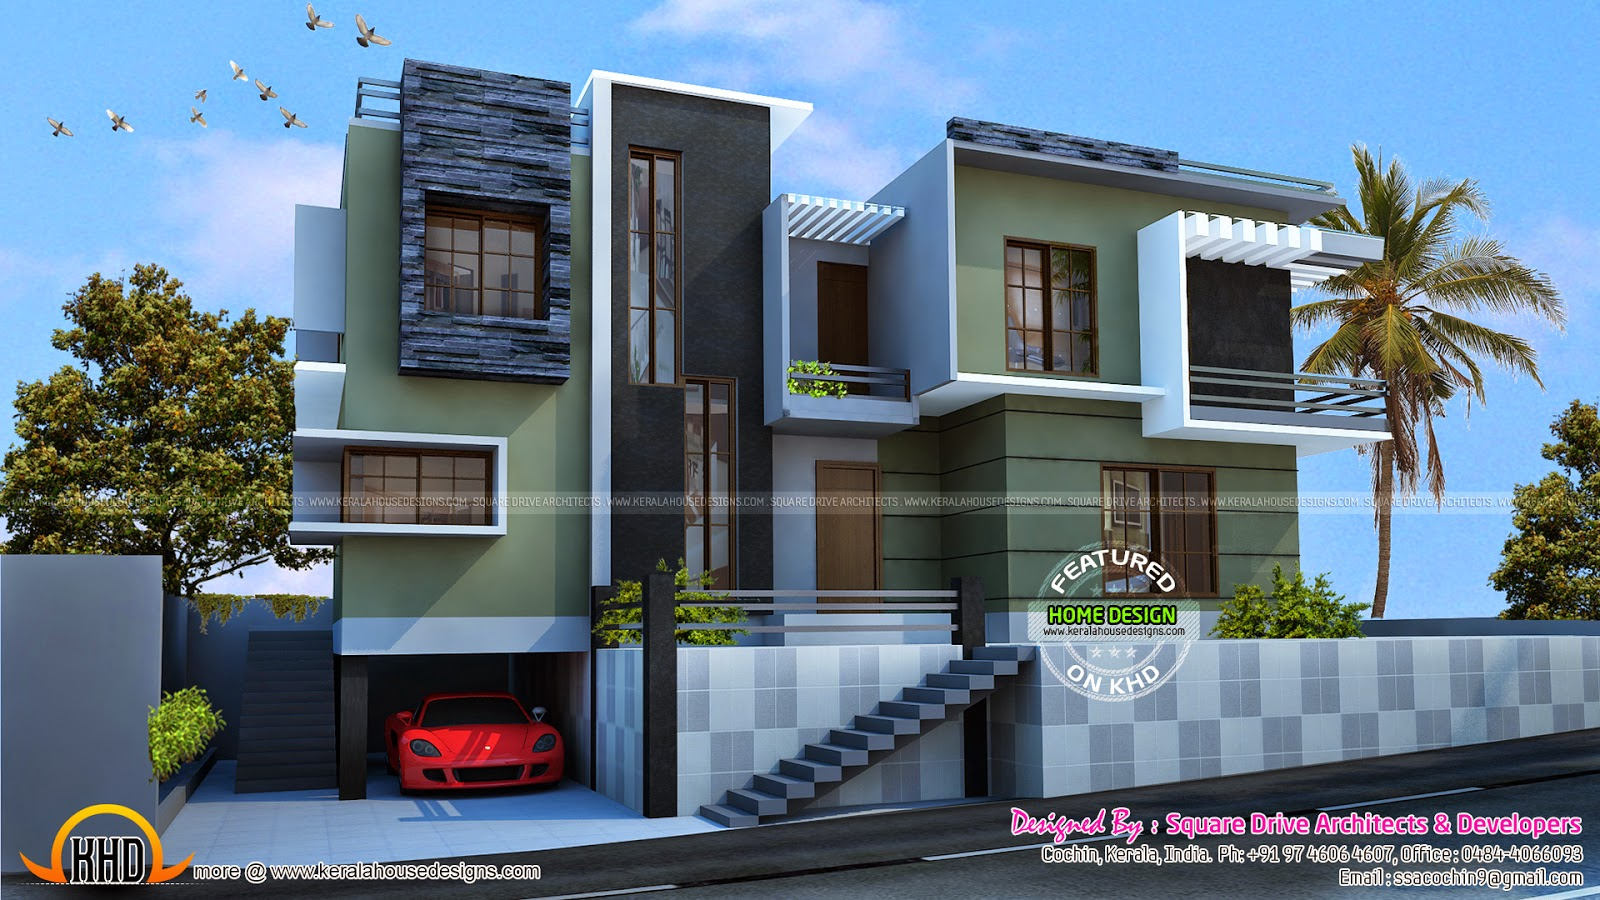 Modern duplex house kerala home design and floor plans for Duplex home plan design